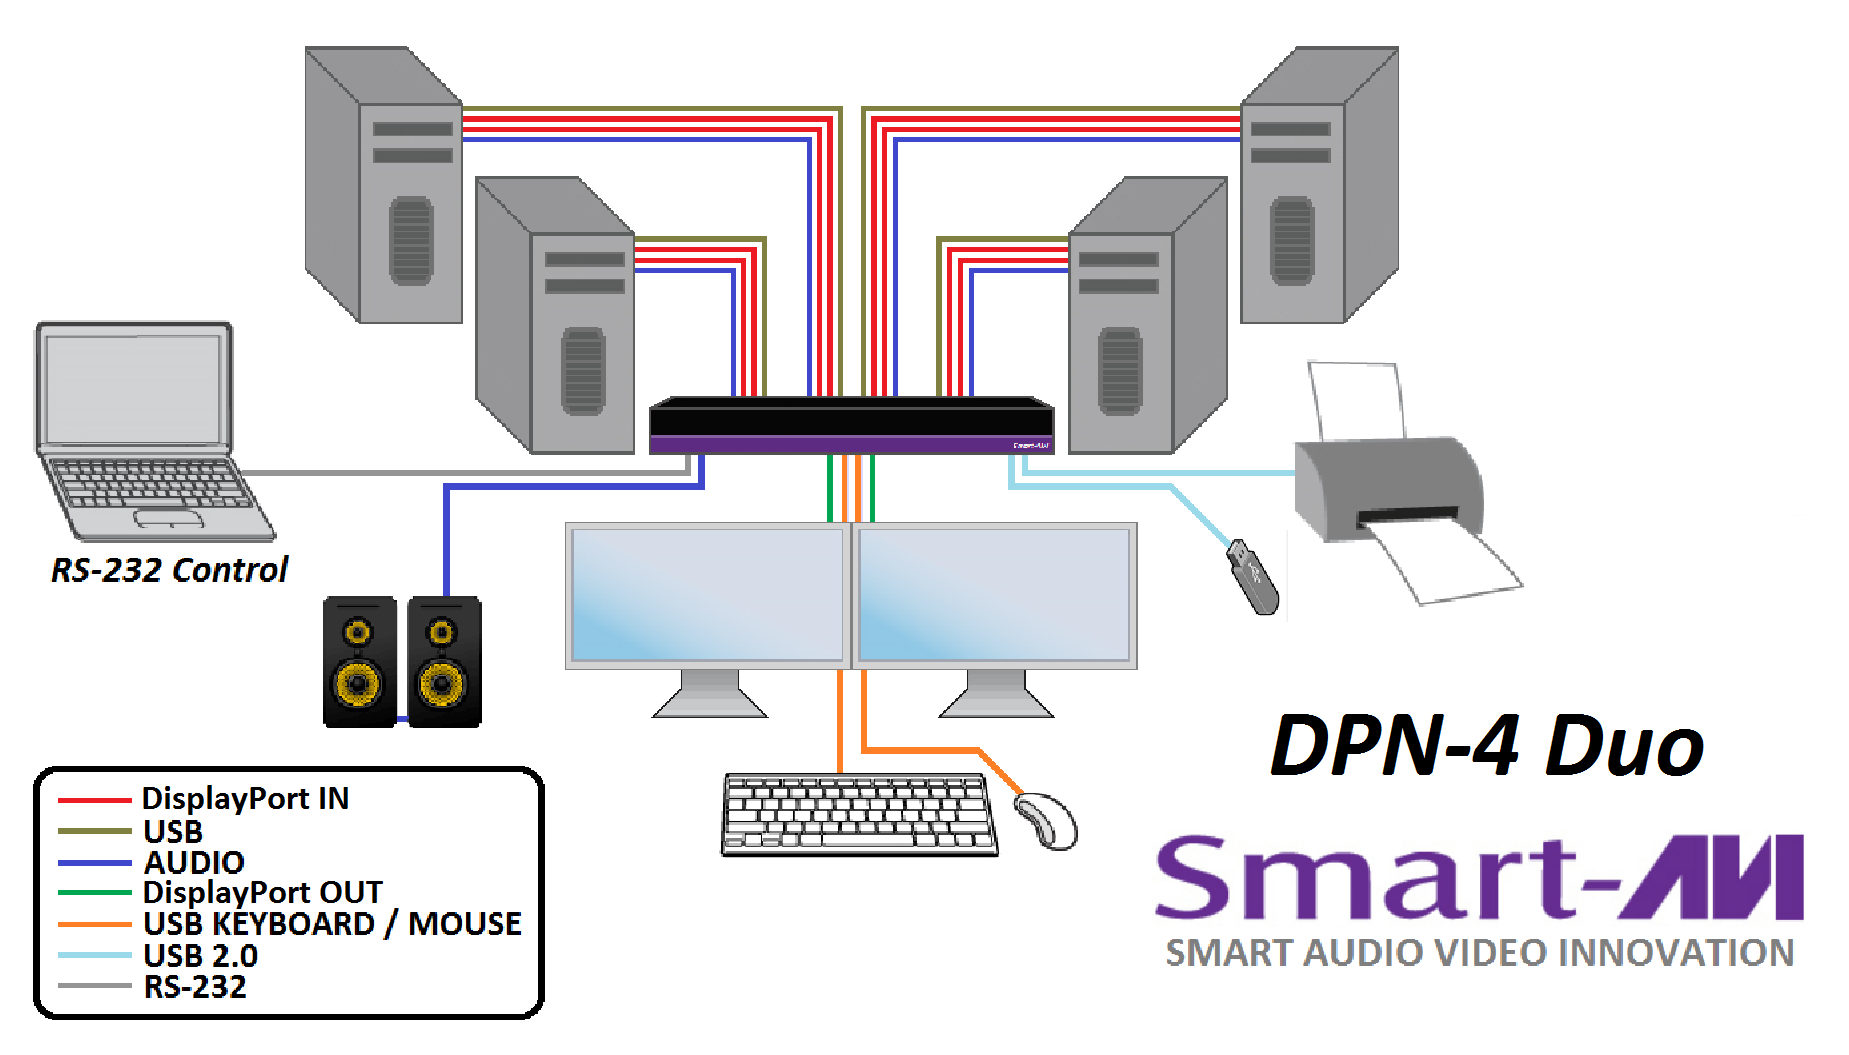 DPN-4 Duo diagram